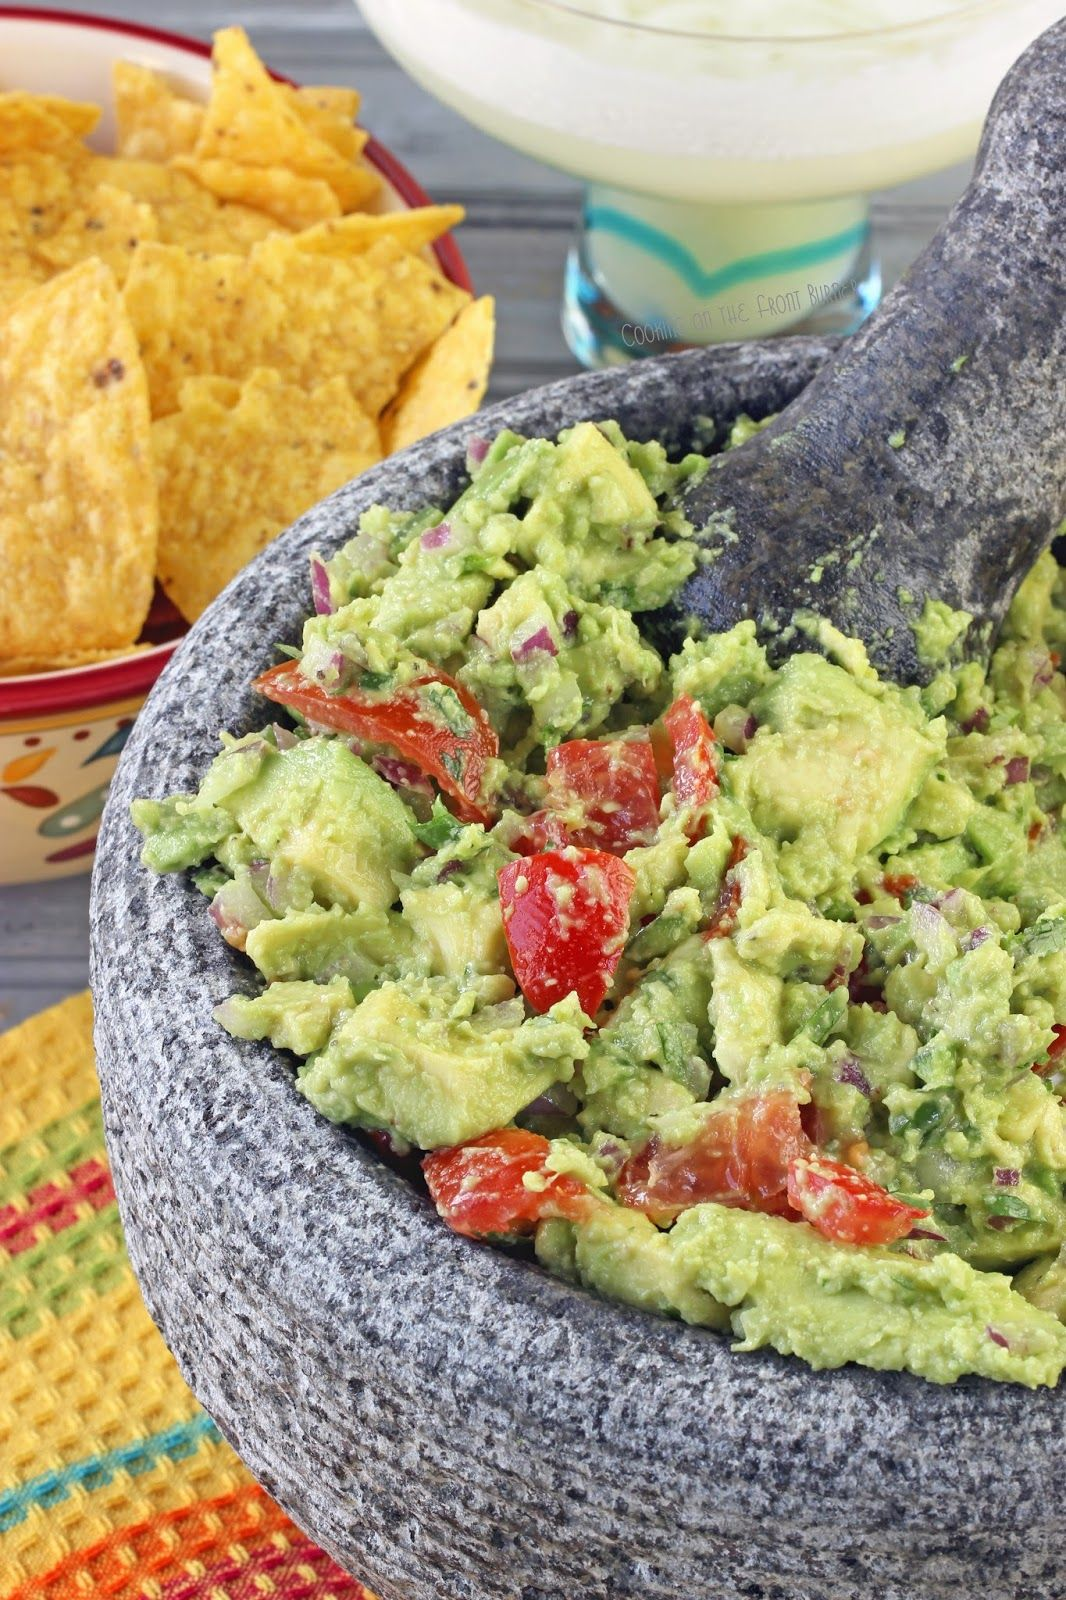 Guacamole - create your own with this easy recipe   Cooking on the Front Burner #guacamole #mexican #avocados